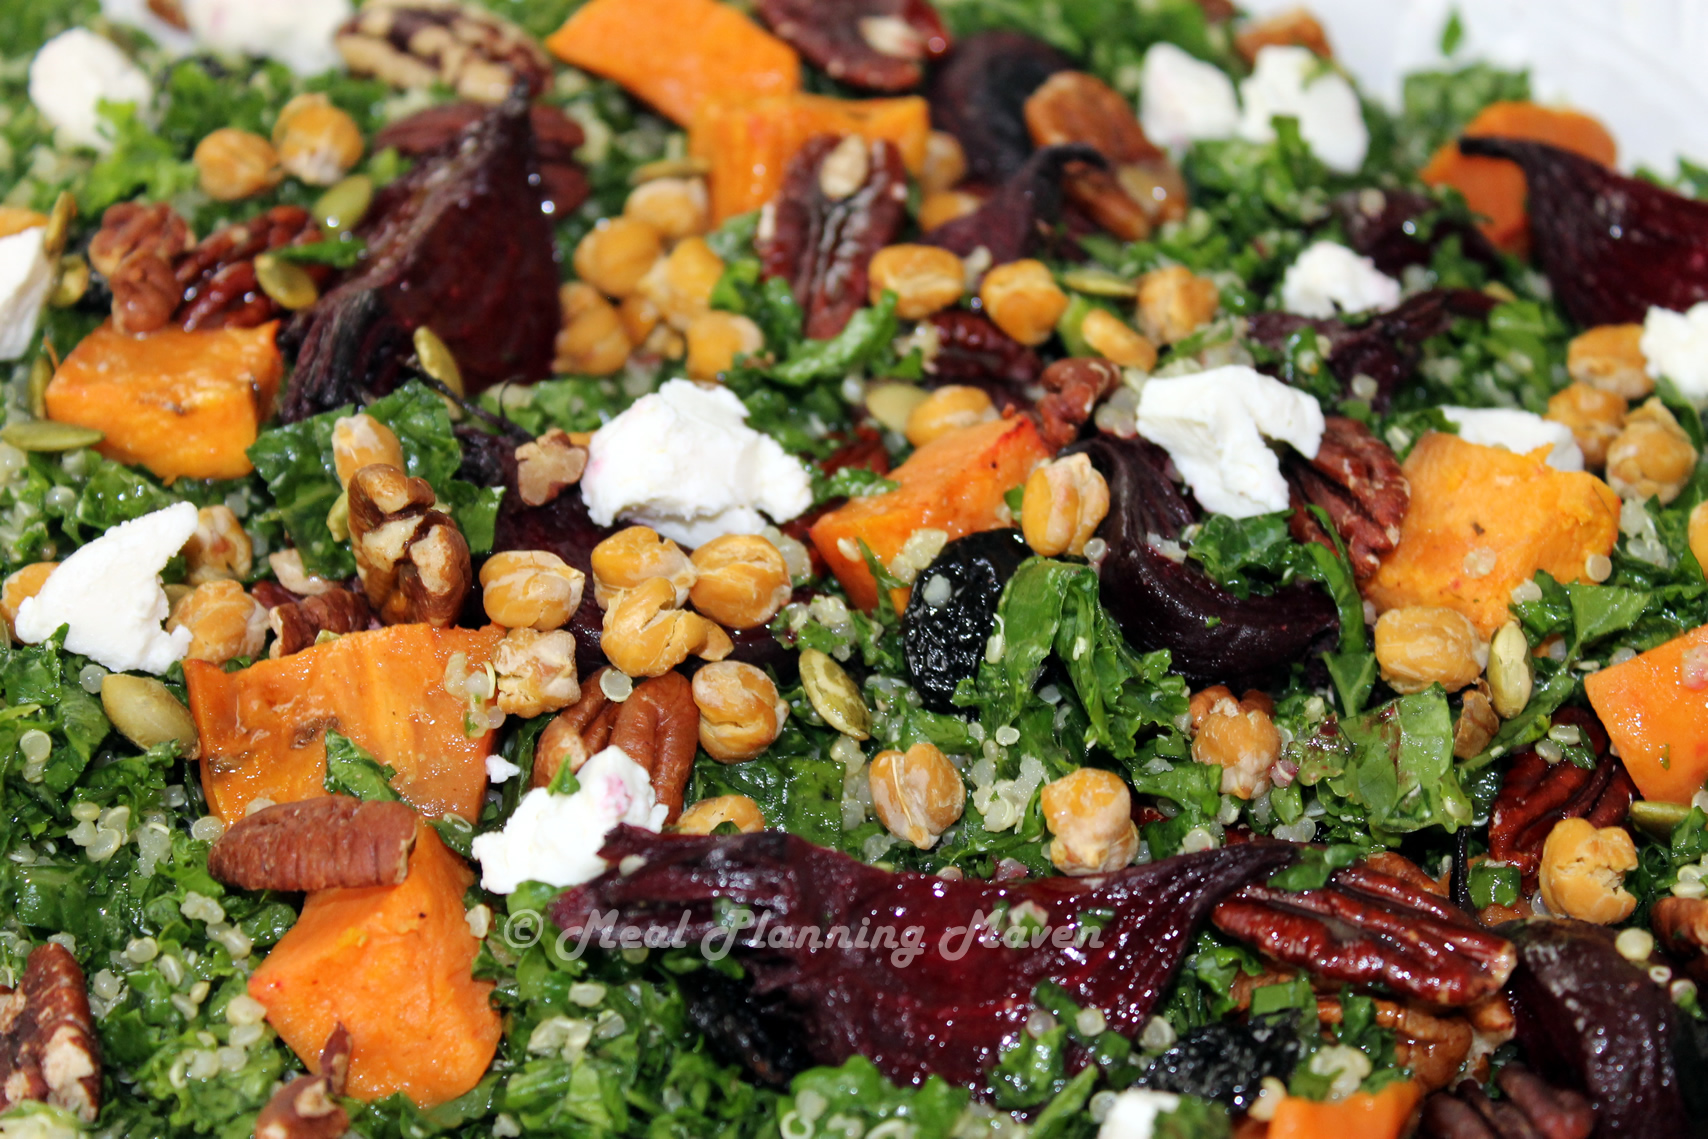 Kale, Quinoa 'n Roasted Beet Salad with Maple-Cider Vinaigrette